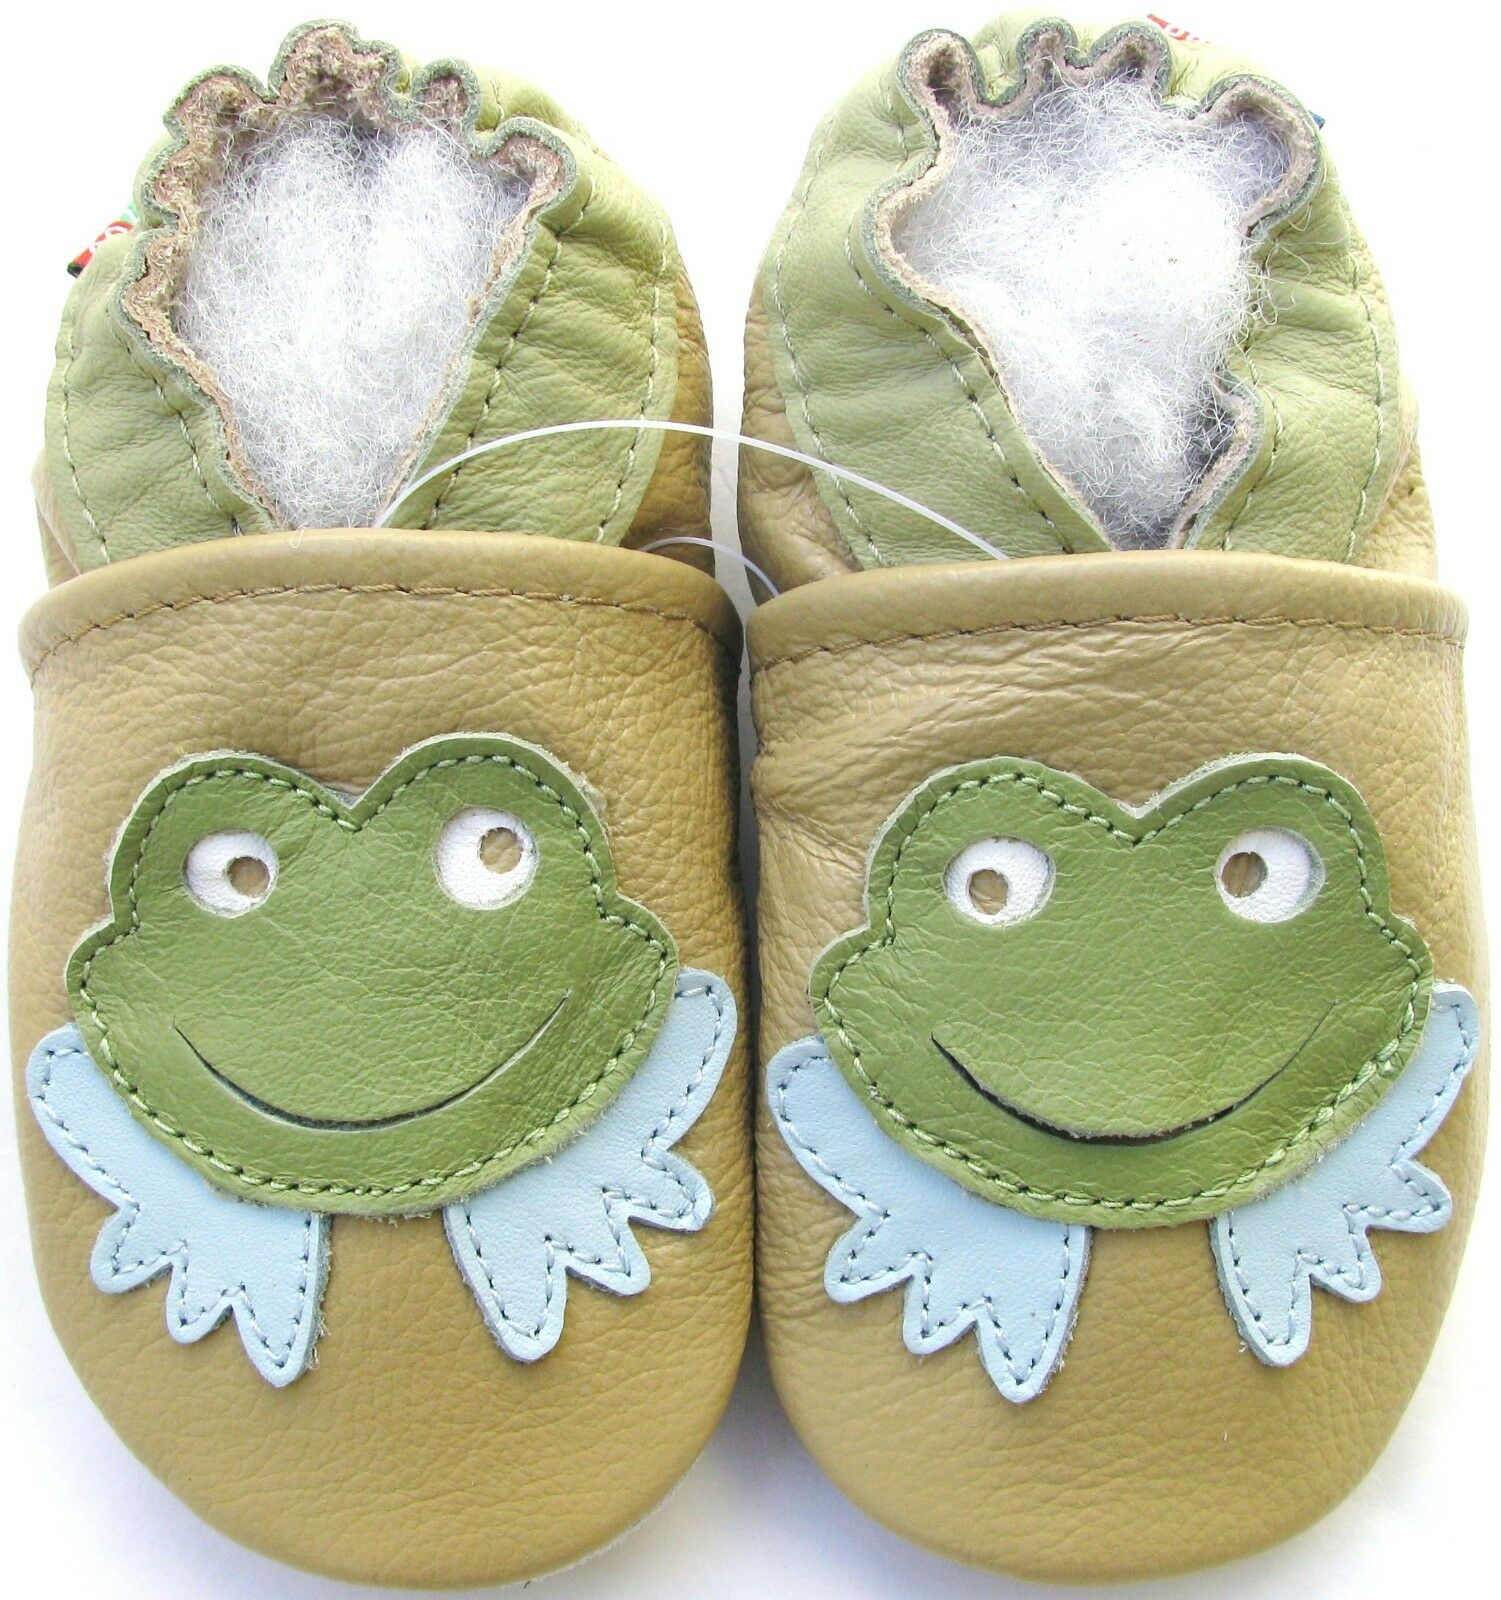 Carozoo Frog Tan 0 6m Soft Sole Leather Baby Shoes